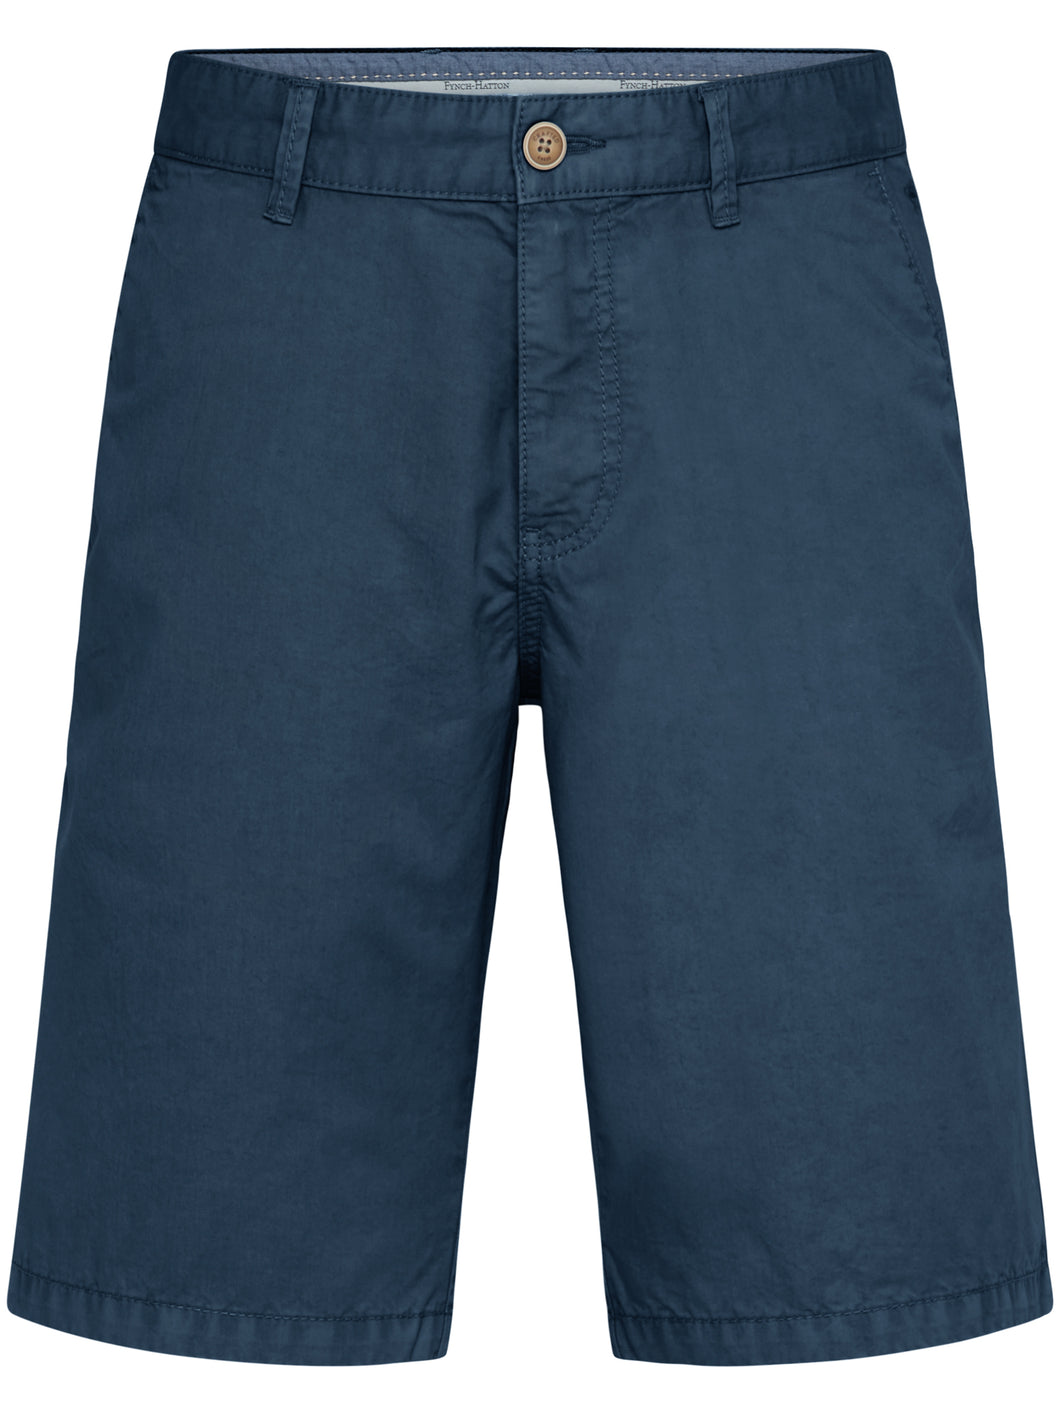 Fynch Hatton Shorts, Cotton, Garment Dyed in regular Classic fit.    Chosen in  Night